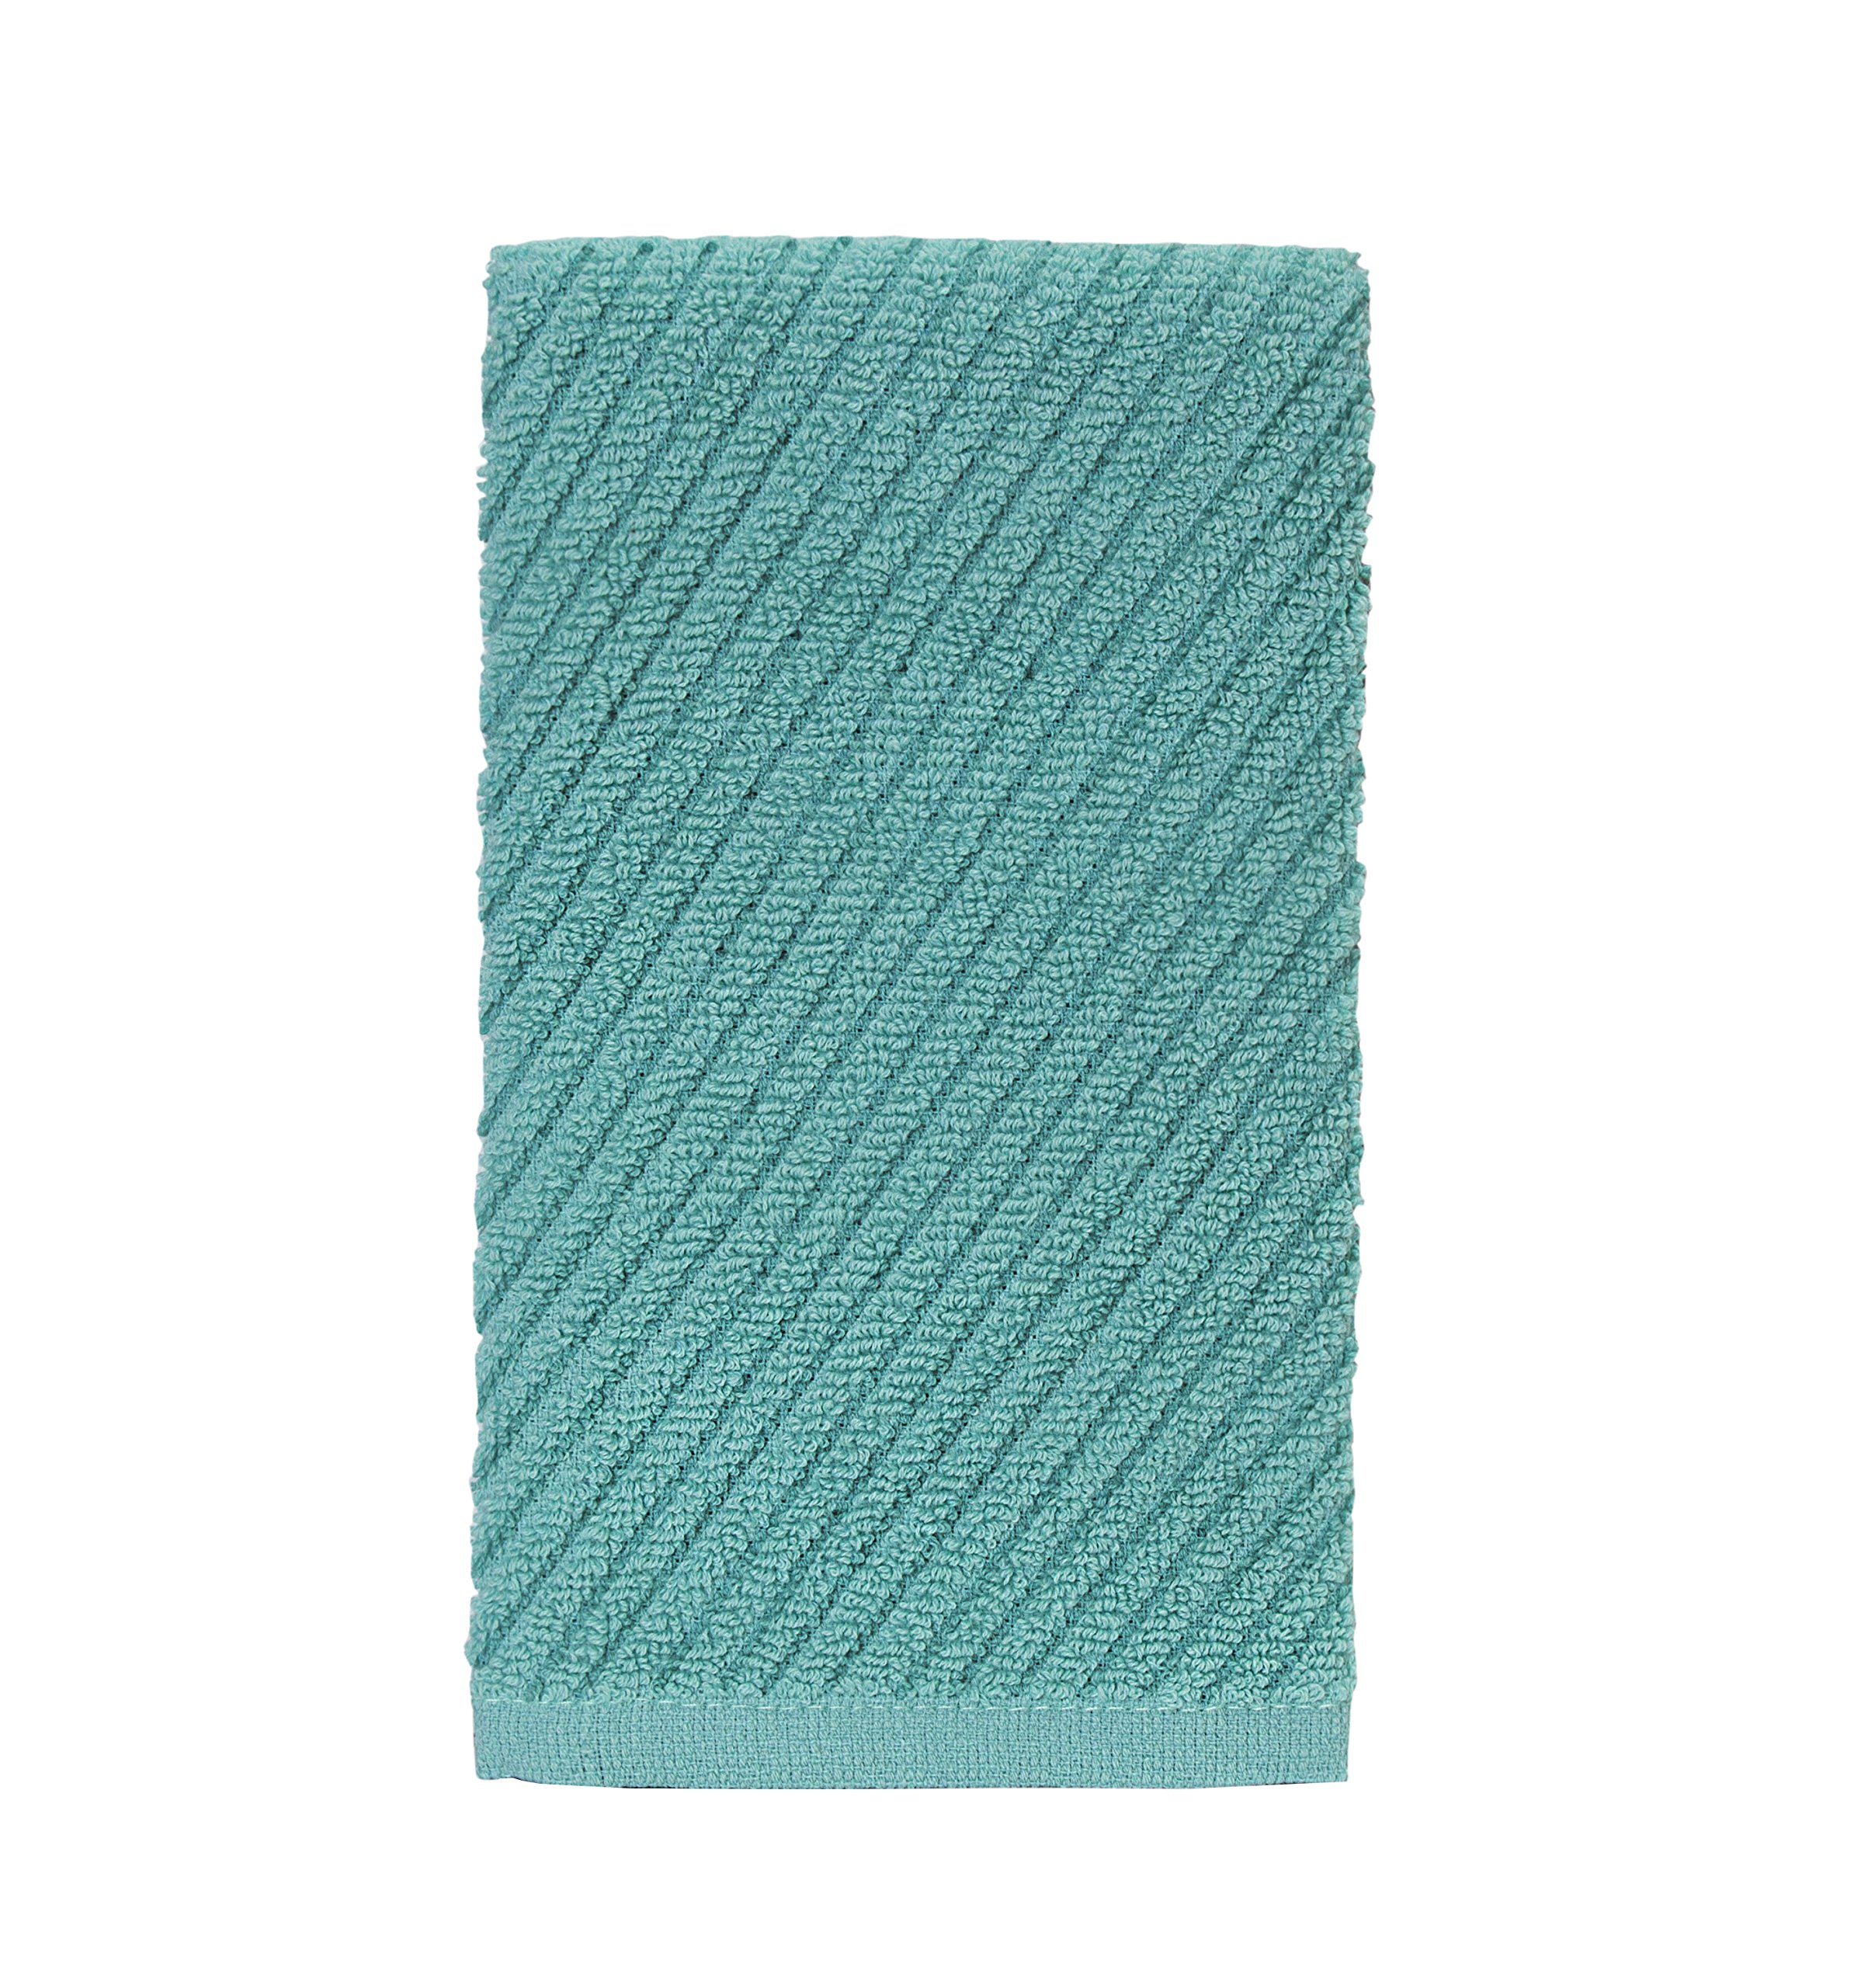 "Bumble Deluxe Barmop Kitchen Towel 6-Pack / 16"" x 19"" / Premium Ultra Absorbent Cotton Hand Towels/Quick Drying Tea Towels/Diagonal Weave Thick 2-Ply/Long Lasting - Aqua by Bumble Towels (Image #3)"